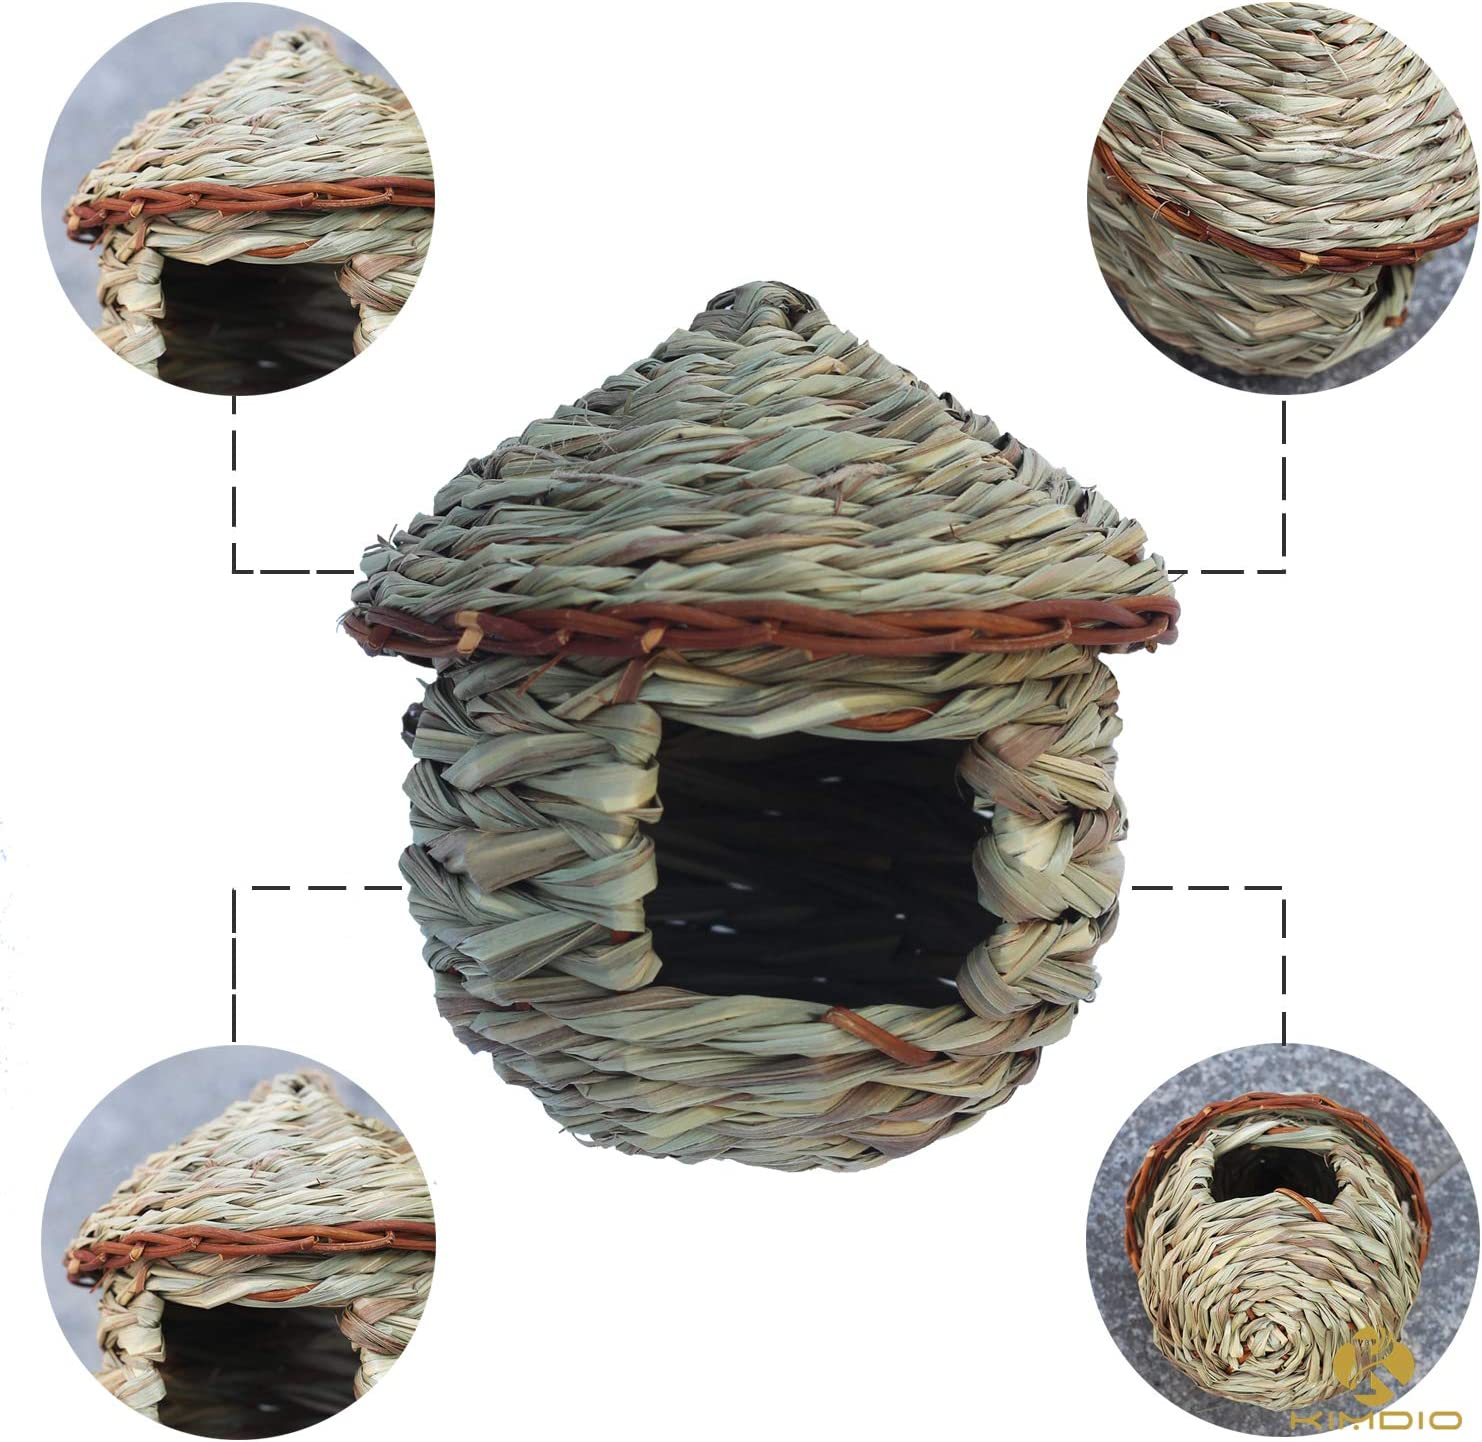 Amazon Com Kimdio Bird House Winter Bird House For Outside Hanging Grass Handwoven Bird Nest Hummingbird House Natural Bird Hut Outdoor Birdhouse For Kids Songbirds House A House Garden Outdoor